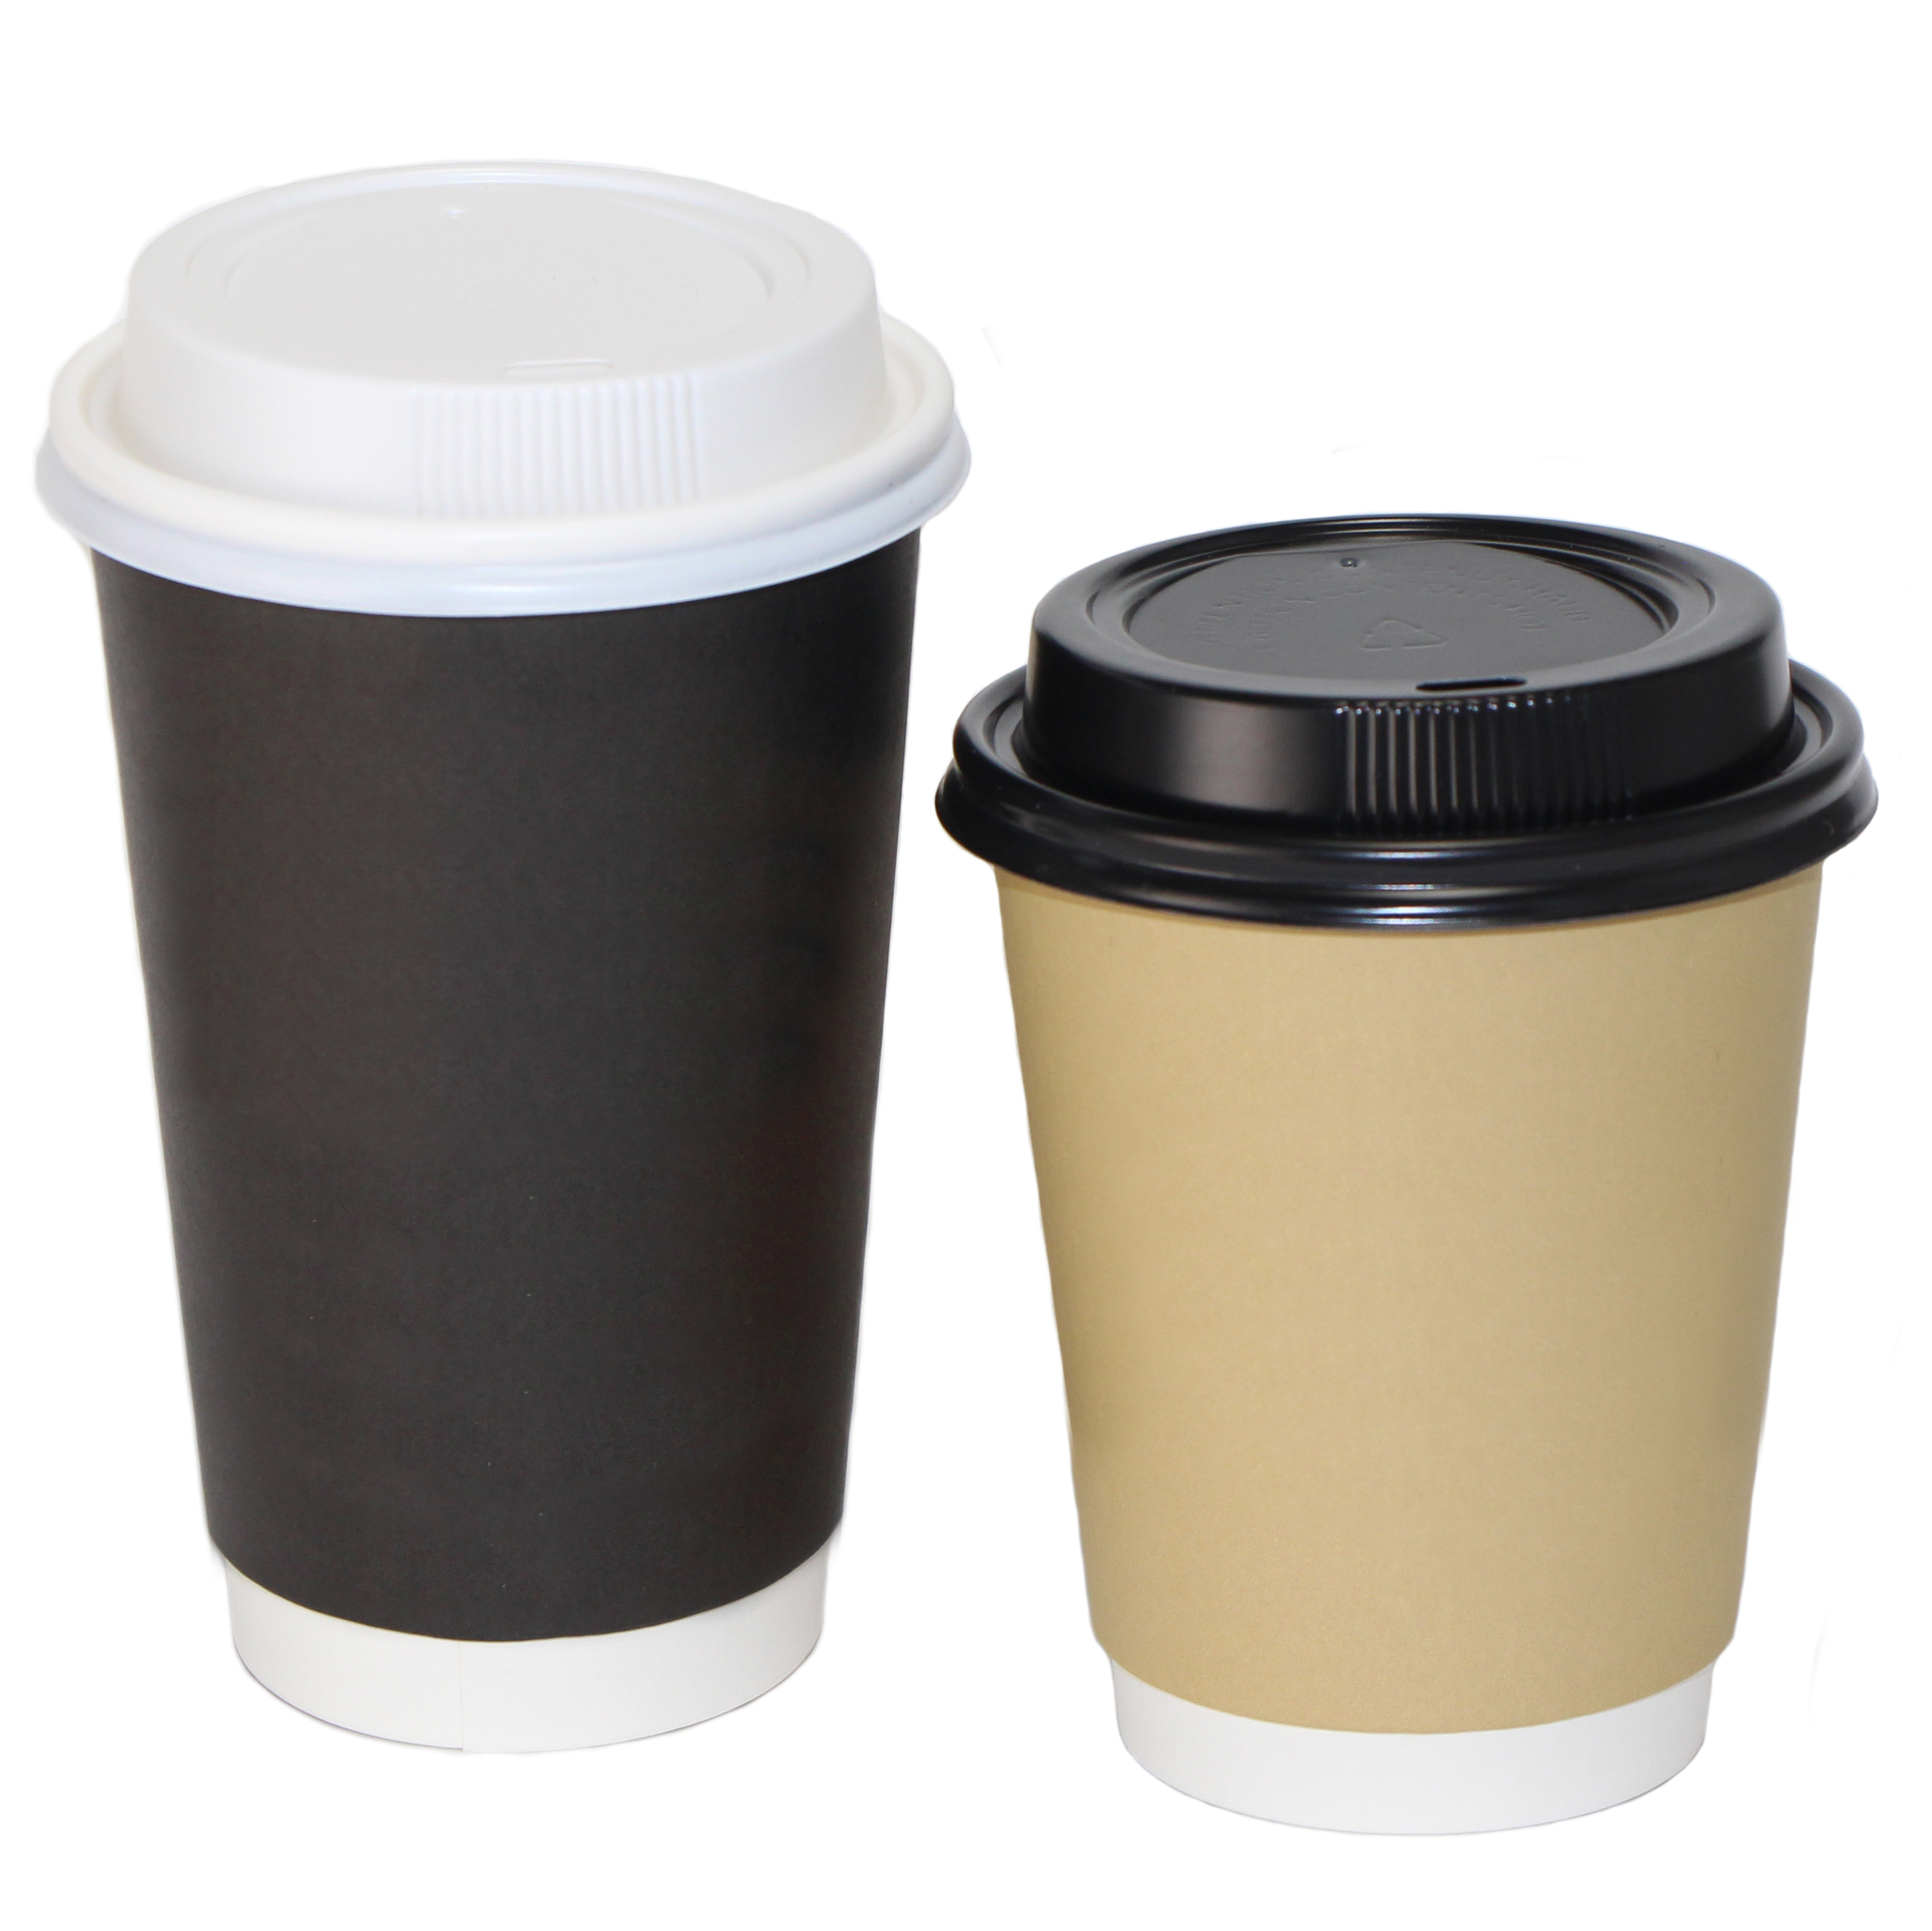 Custom Printed Coffee Cups • Singlewall, Doublewall And Ripplewall • Sizes: 4, 8, 10, 12, 16, 20, 24 Oz • Minimums: 50 To 100 Cases (1,000 Units/case) • Superior Print Quality To Show Your Logo/message